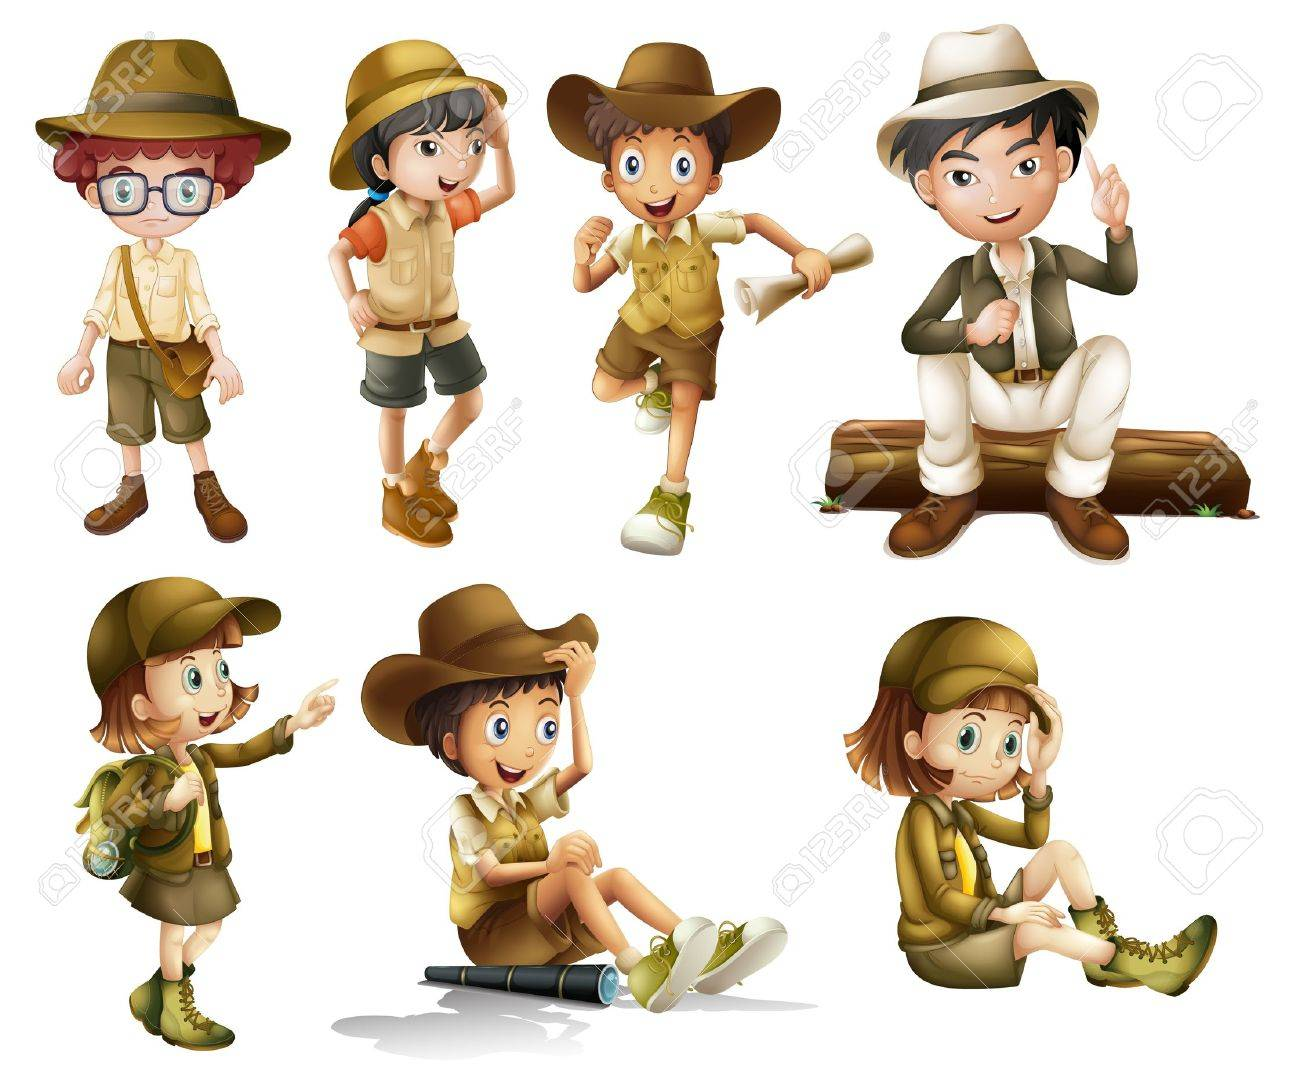 Illustration of boys and girls in safari costume on a white background - 16930144